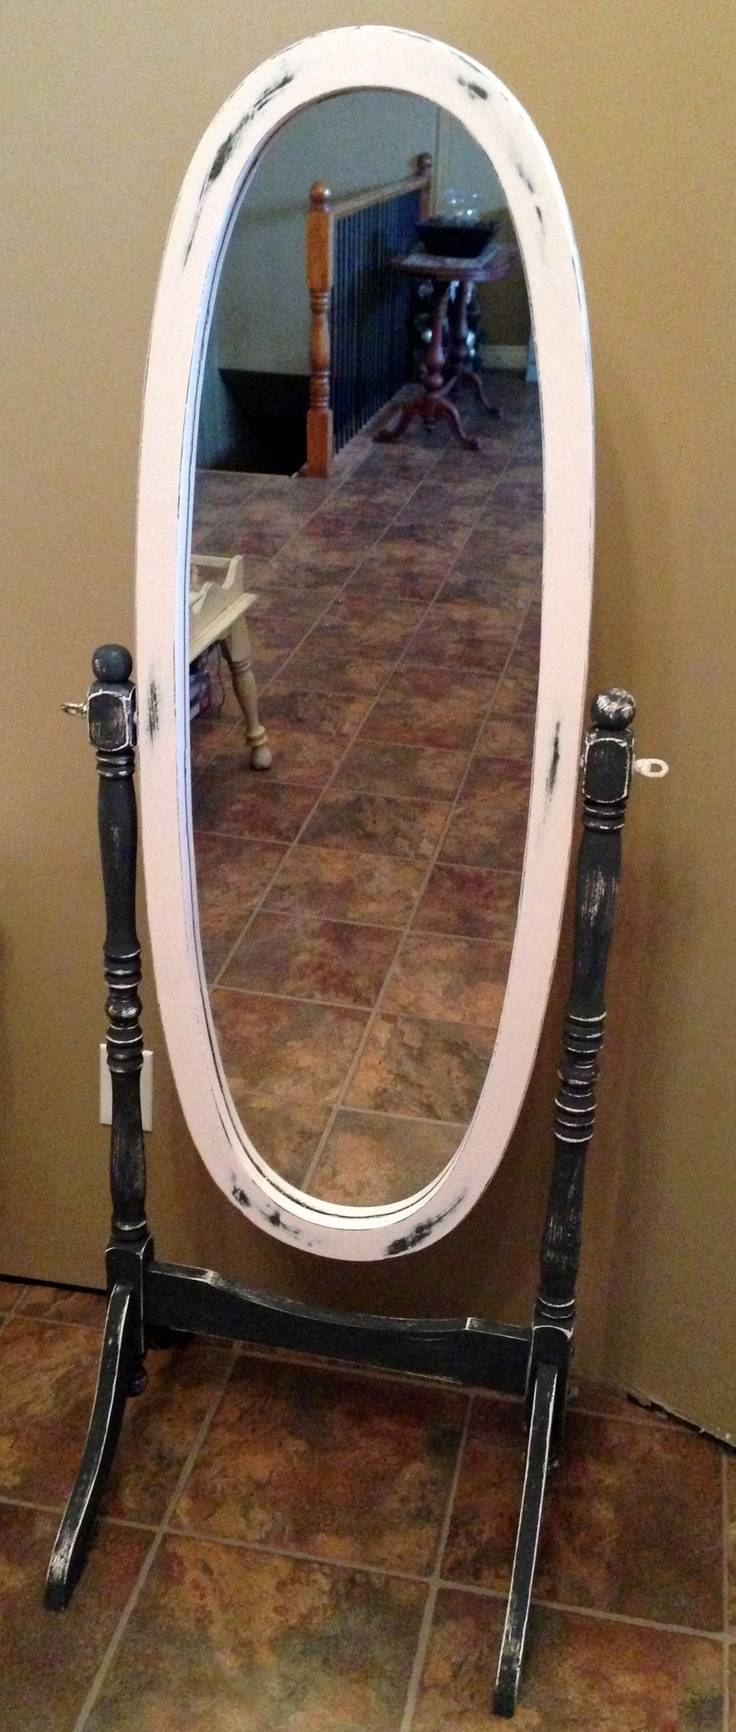 431 Best Mirrors / New And Old Love Them Images On Pinterest with Free Standing Long Mirrors (Image 1 of 15)